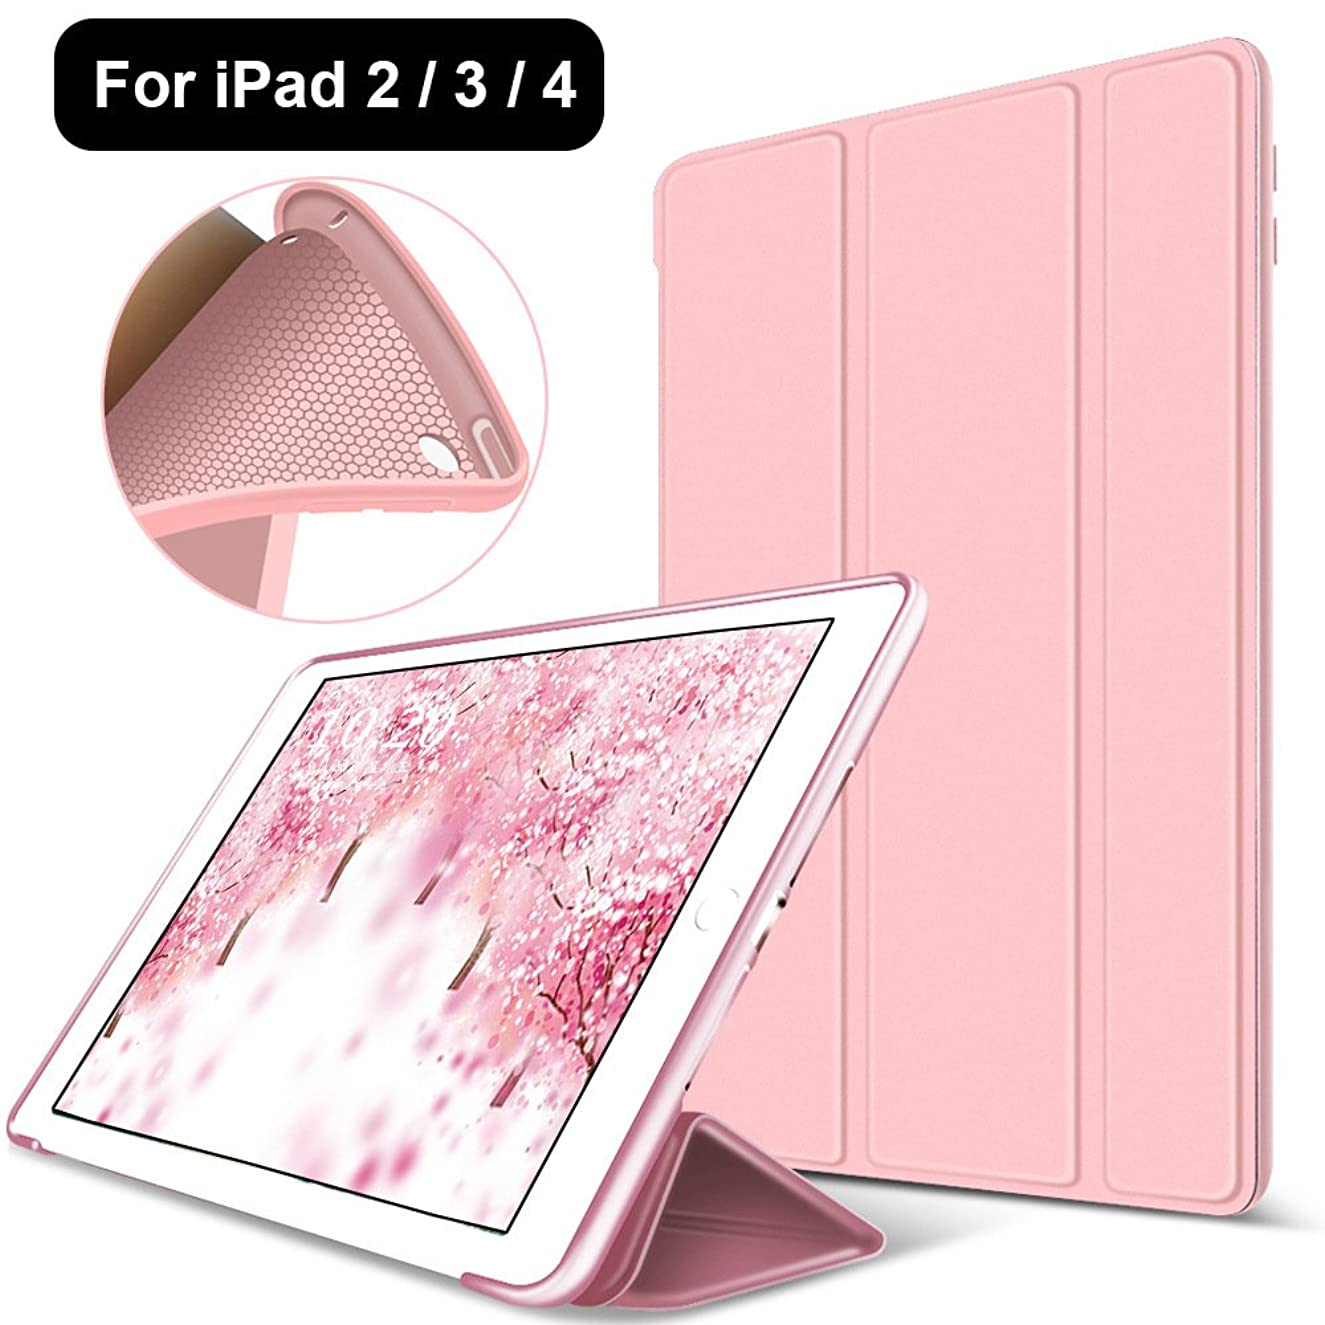 iPad 2/3/4 Case,Mektron Microfiber Lining Smart Case Trifold Stand with Auto Sleep Wake Function Full Silicone Soft Back Cover For Apple iPad 2 3 4,Rose Gold